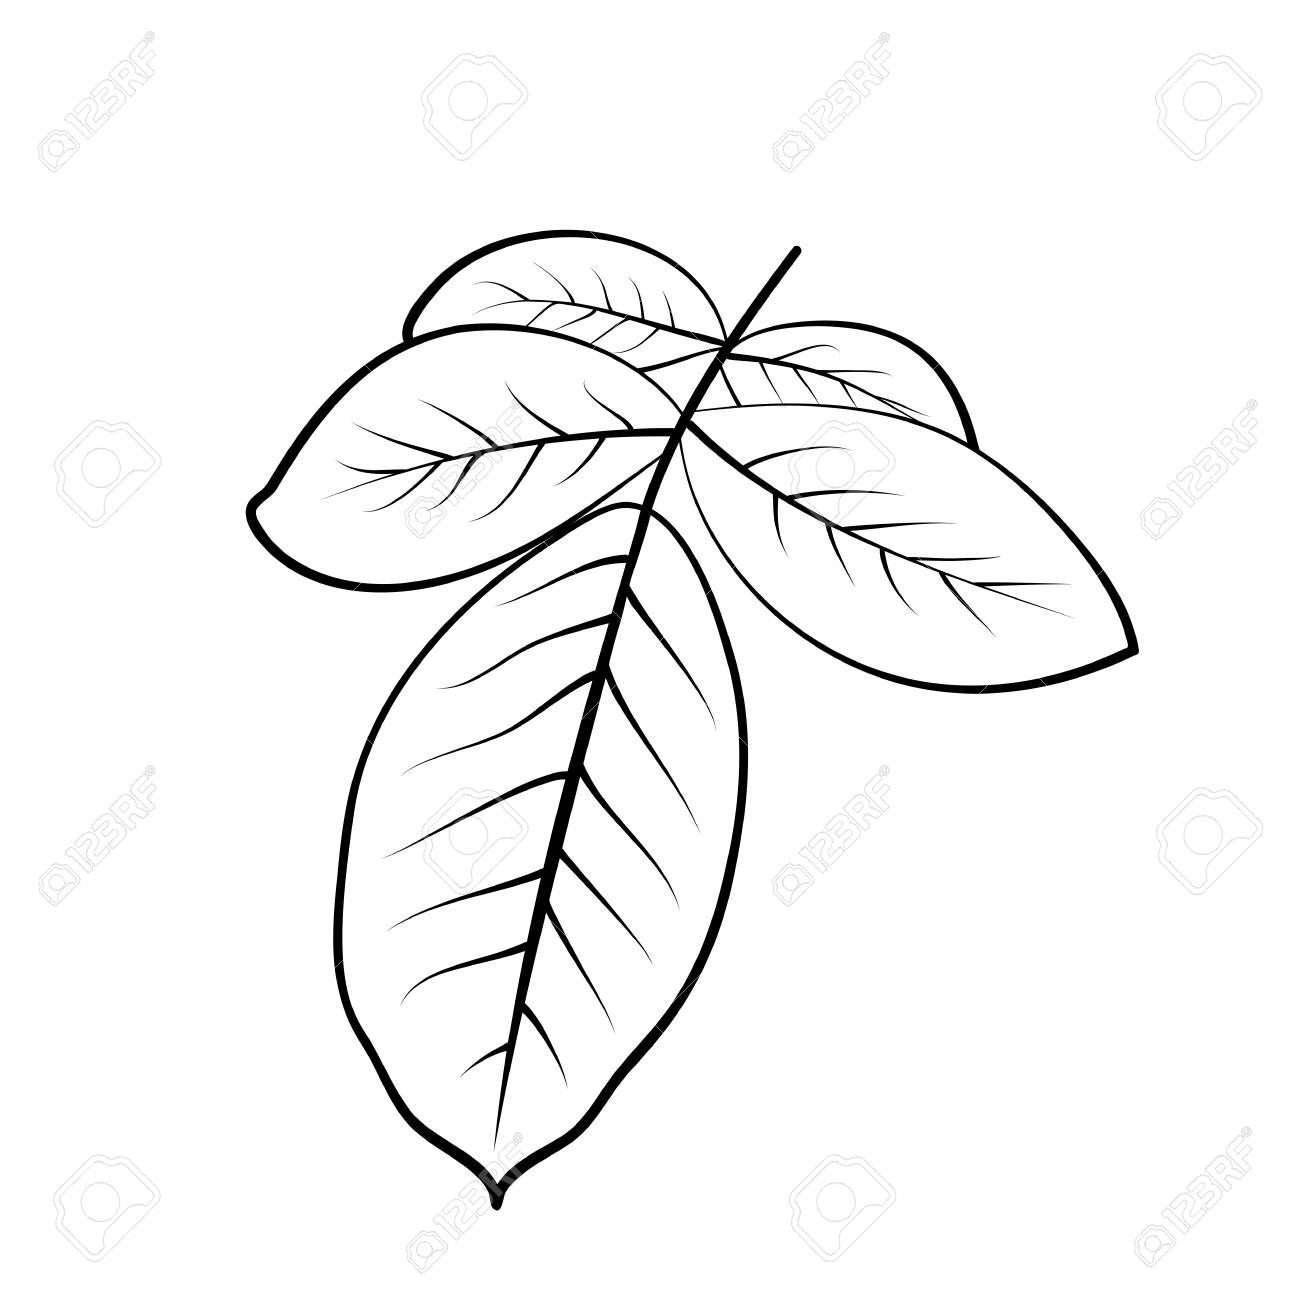 Vector Illustration Isolated Rose Leaves In Black And White Royalty Free Cliparts Vectors And Stock Illustration Image 101509670